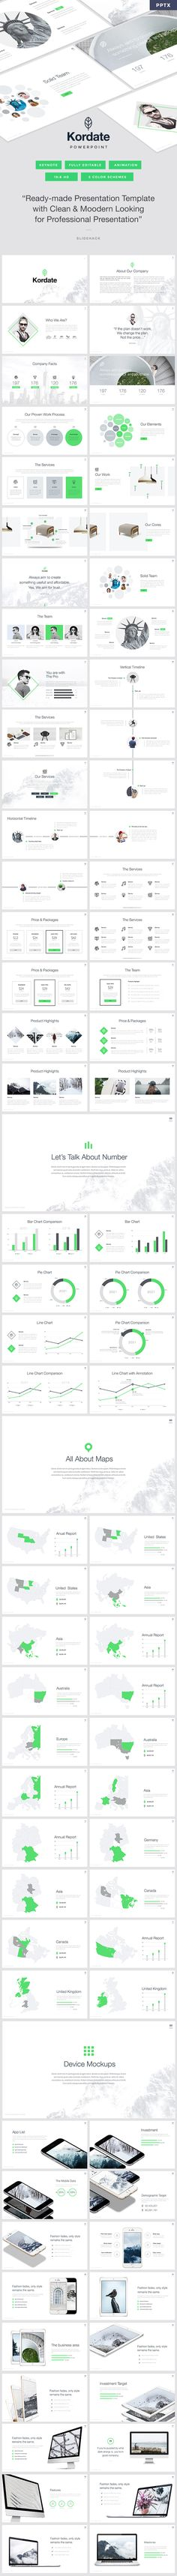 Kordate - Modern and Professional #Powerpoint #Template - PowerPoint Templates Presentation Templates Download here: https://graphicriver.net/item/kordate-modern-and-professional-powerpoint-template/19443107?ref=alena994